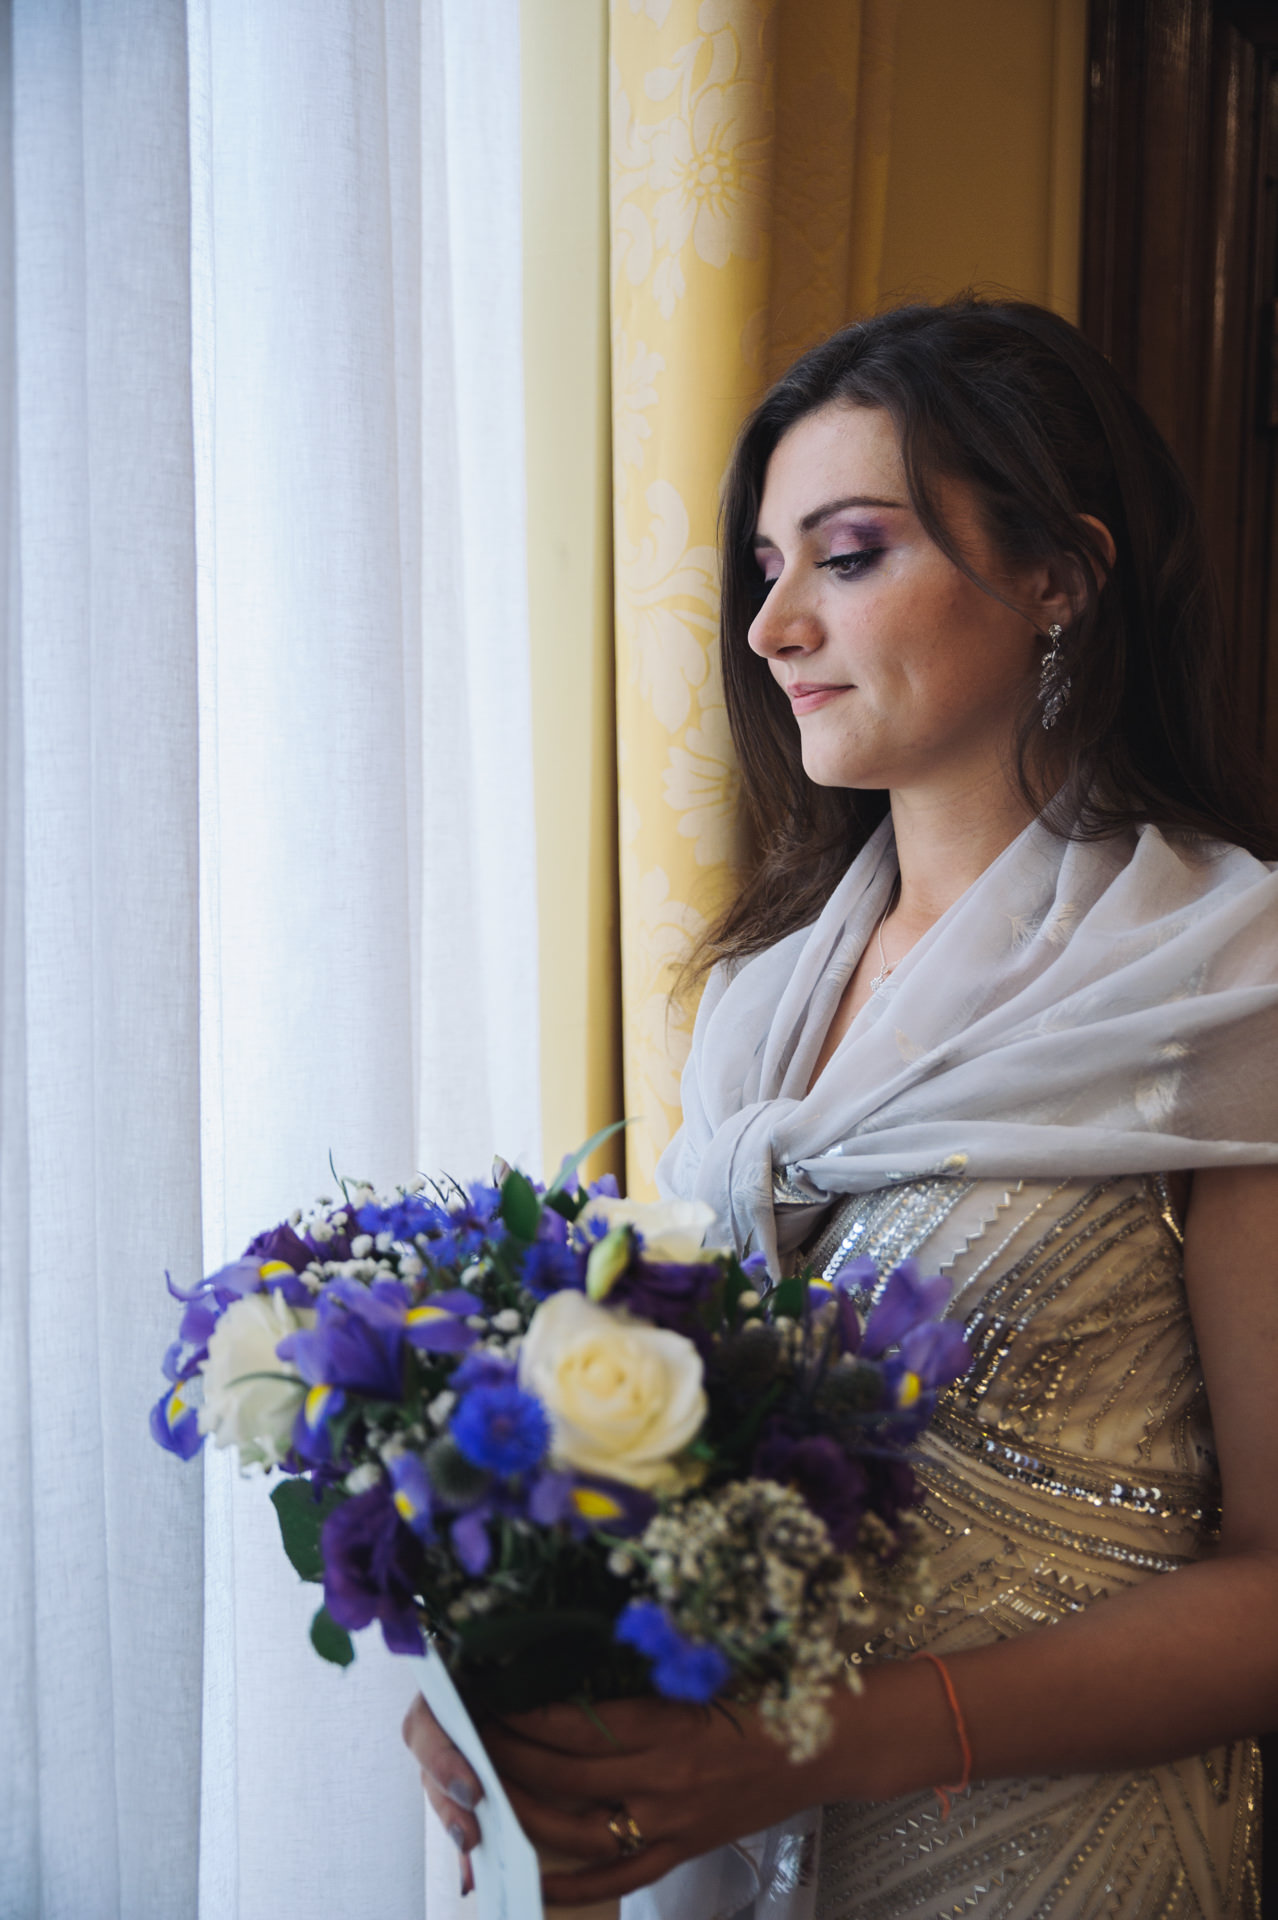 islington town hall wedding bride portrait by the window